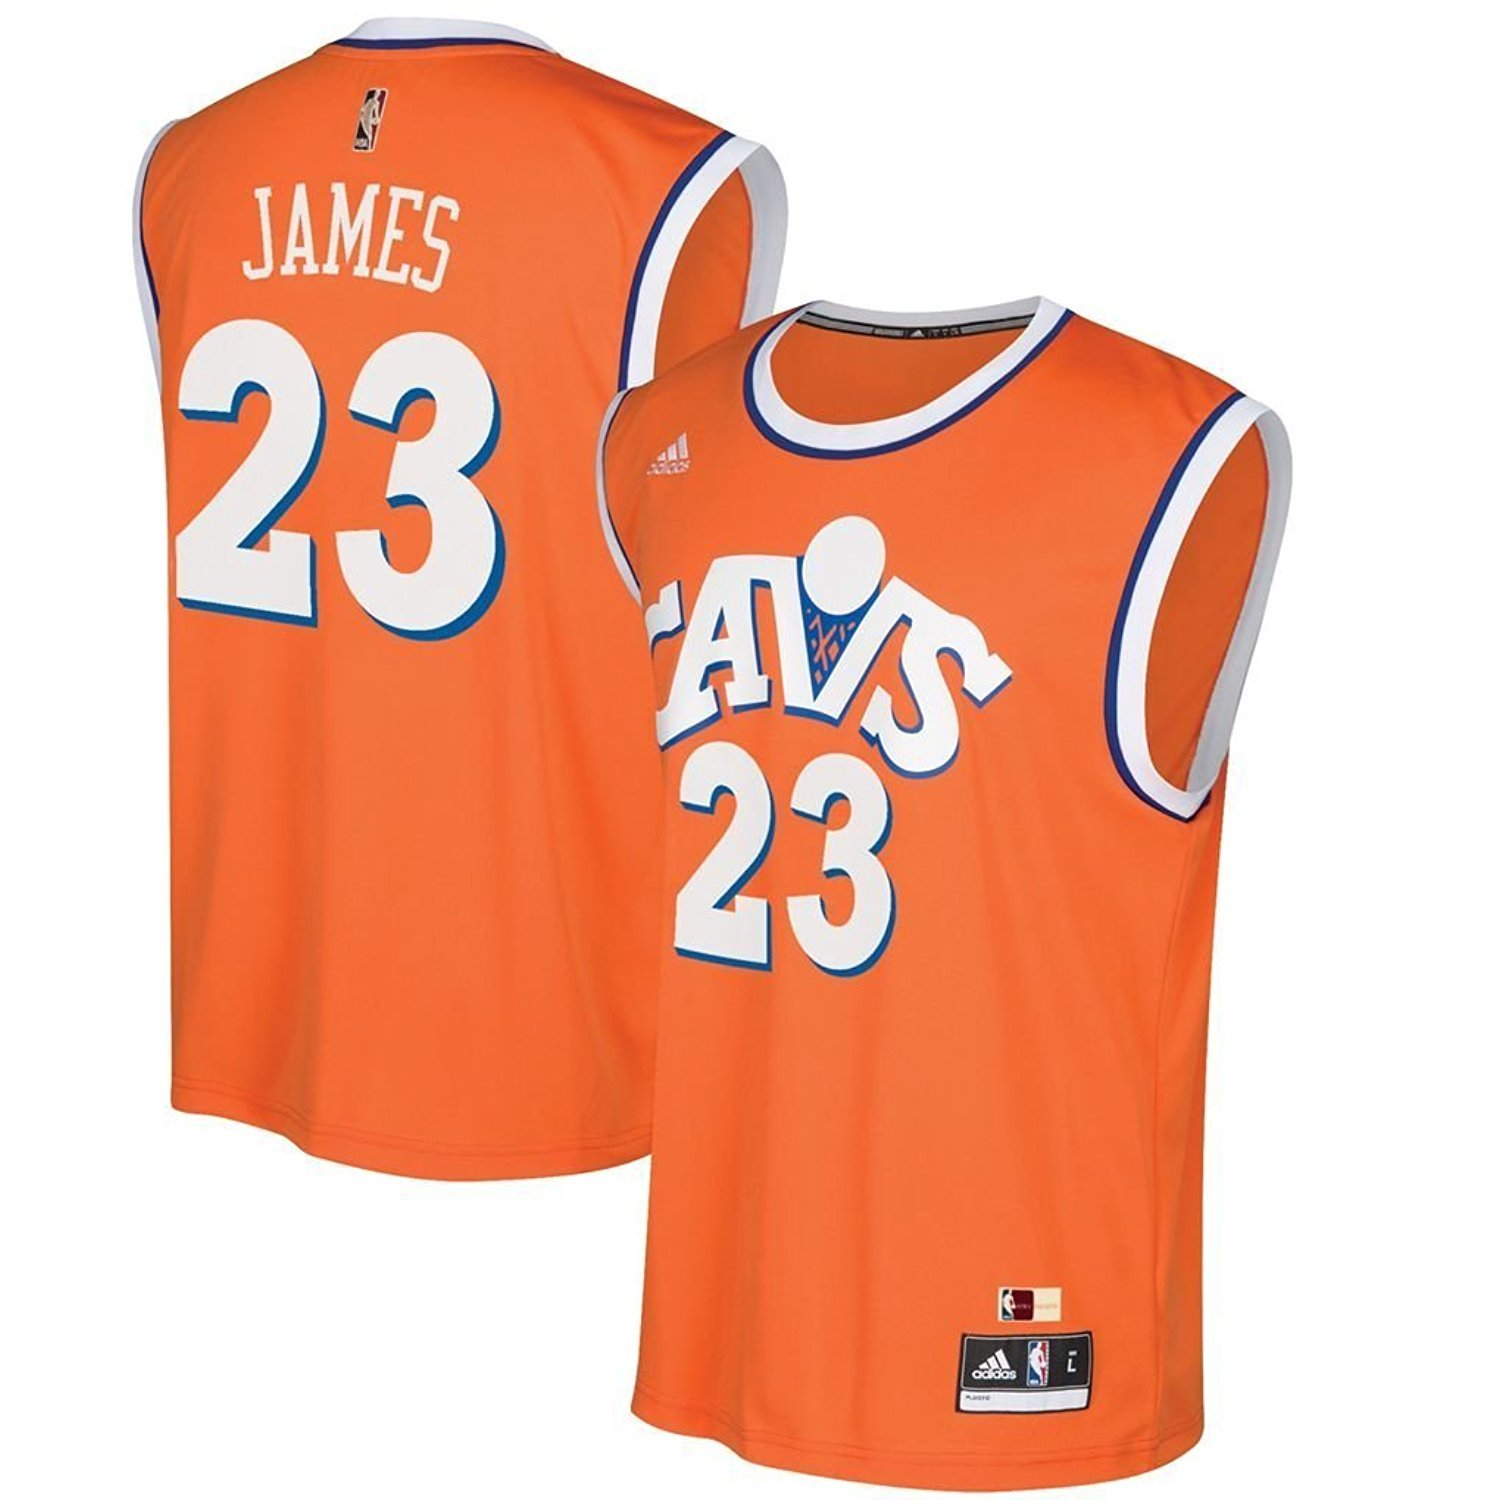 ab1e6dfcc13 Amazon.com  Lebron James Cleveland Cavaliers Replica Orange Throwback Youth  Jersey Boys 8-20 (Youth Small 8)  Clothing